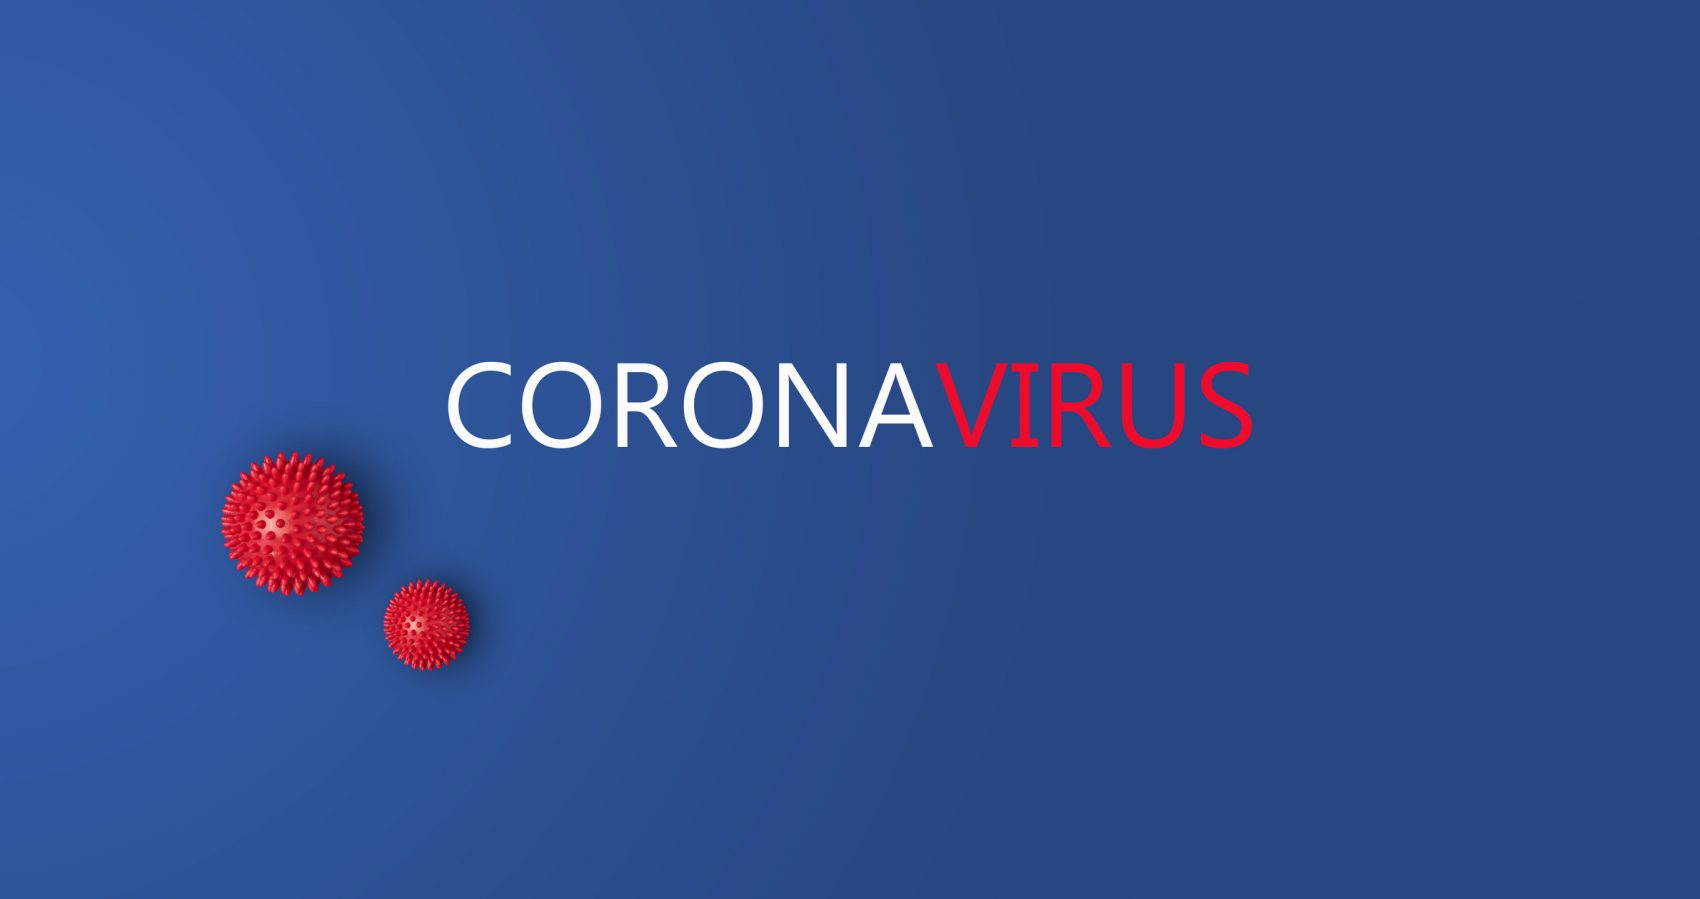 Red and white inscription Coronavirus on blue background with abstract viral strain model with copy space, banner. Corona virus disease COVID-19 from Wuhan, China